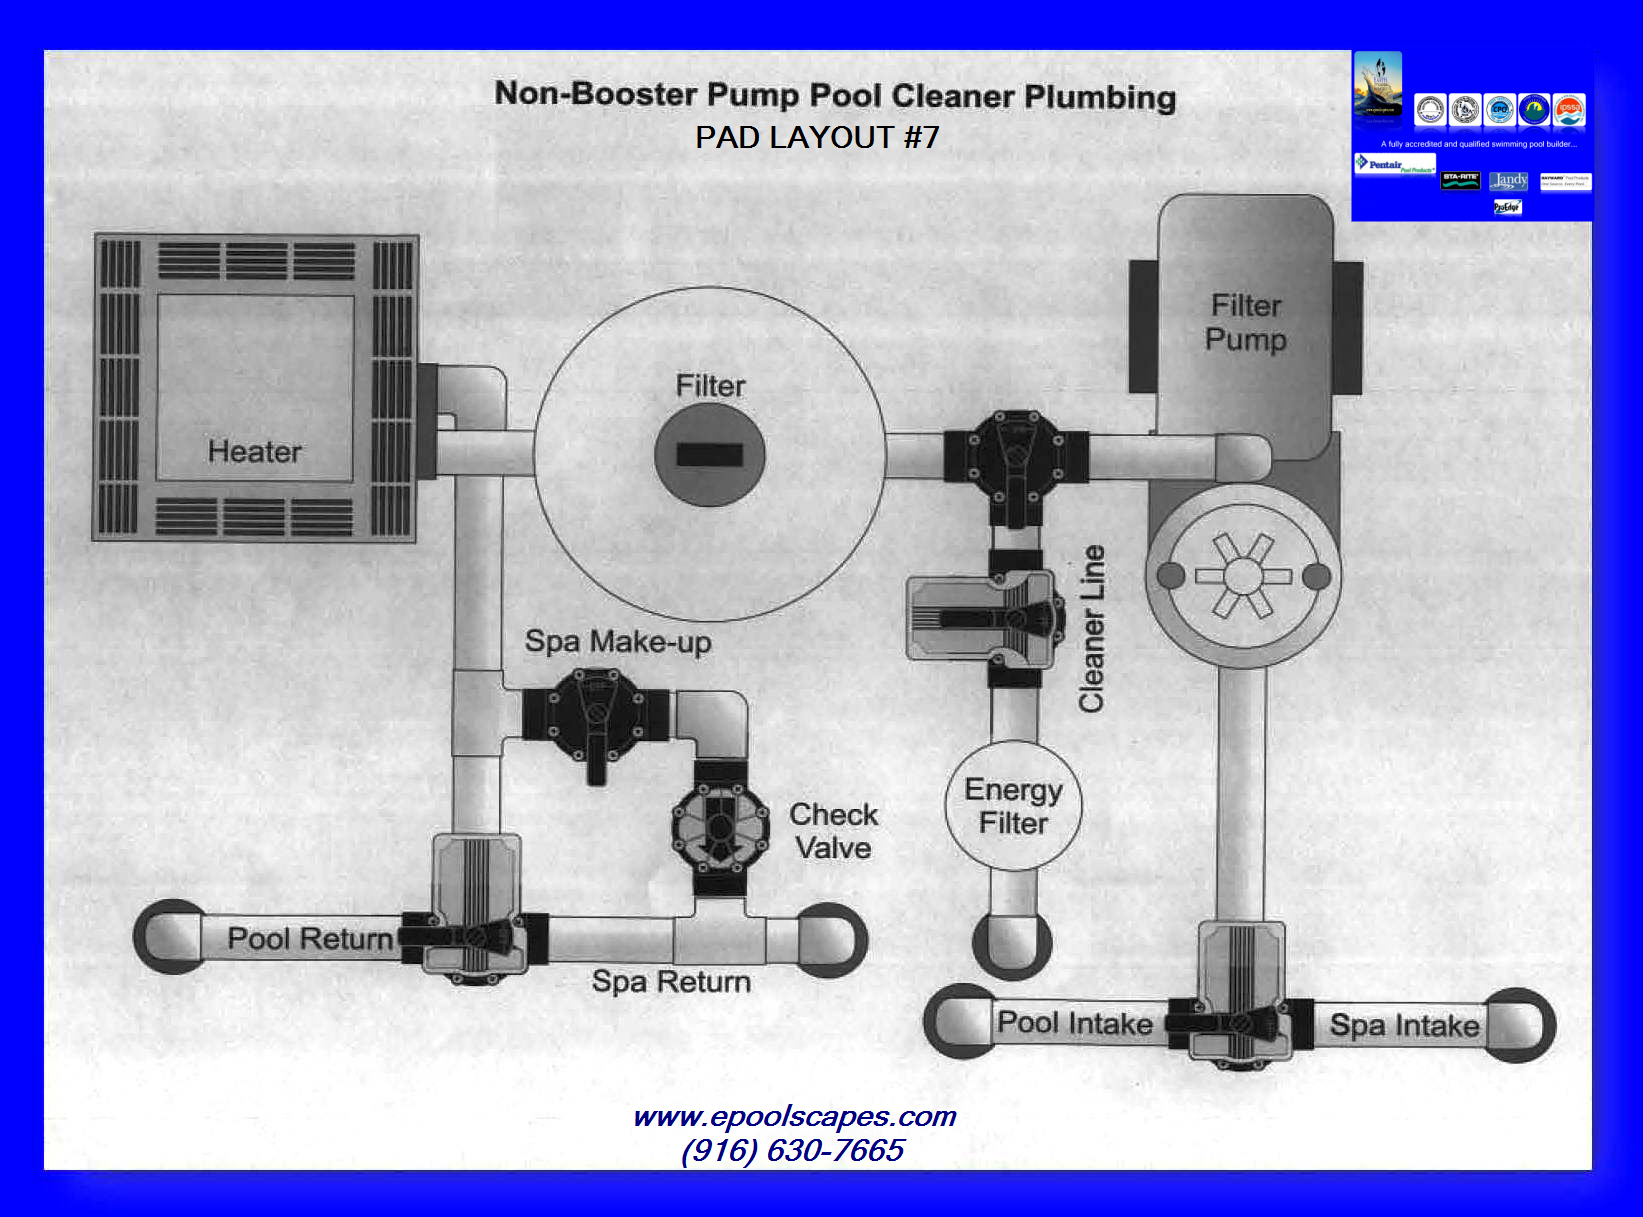 Edpi Equipment Schematics on Swimming Pool Filter System Diagram